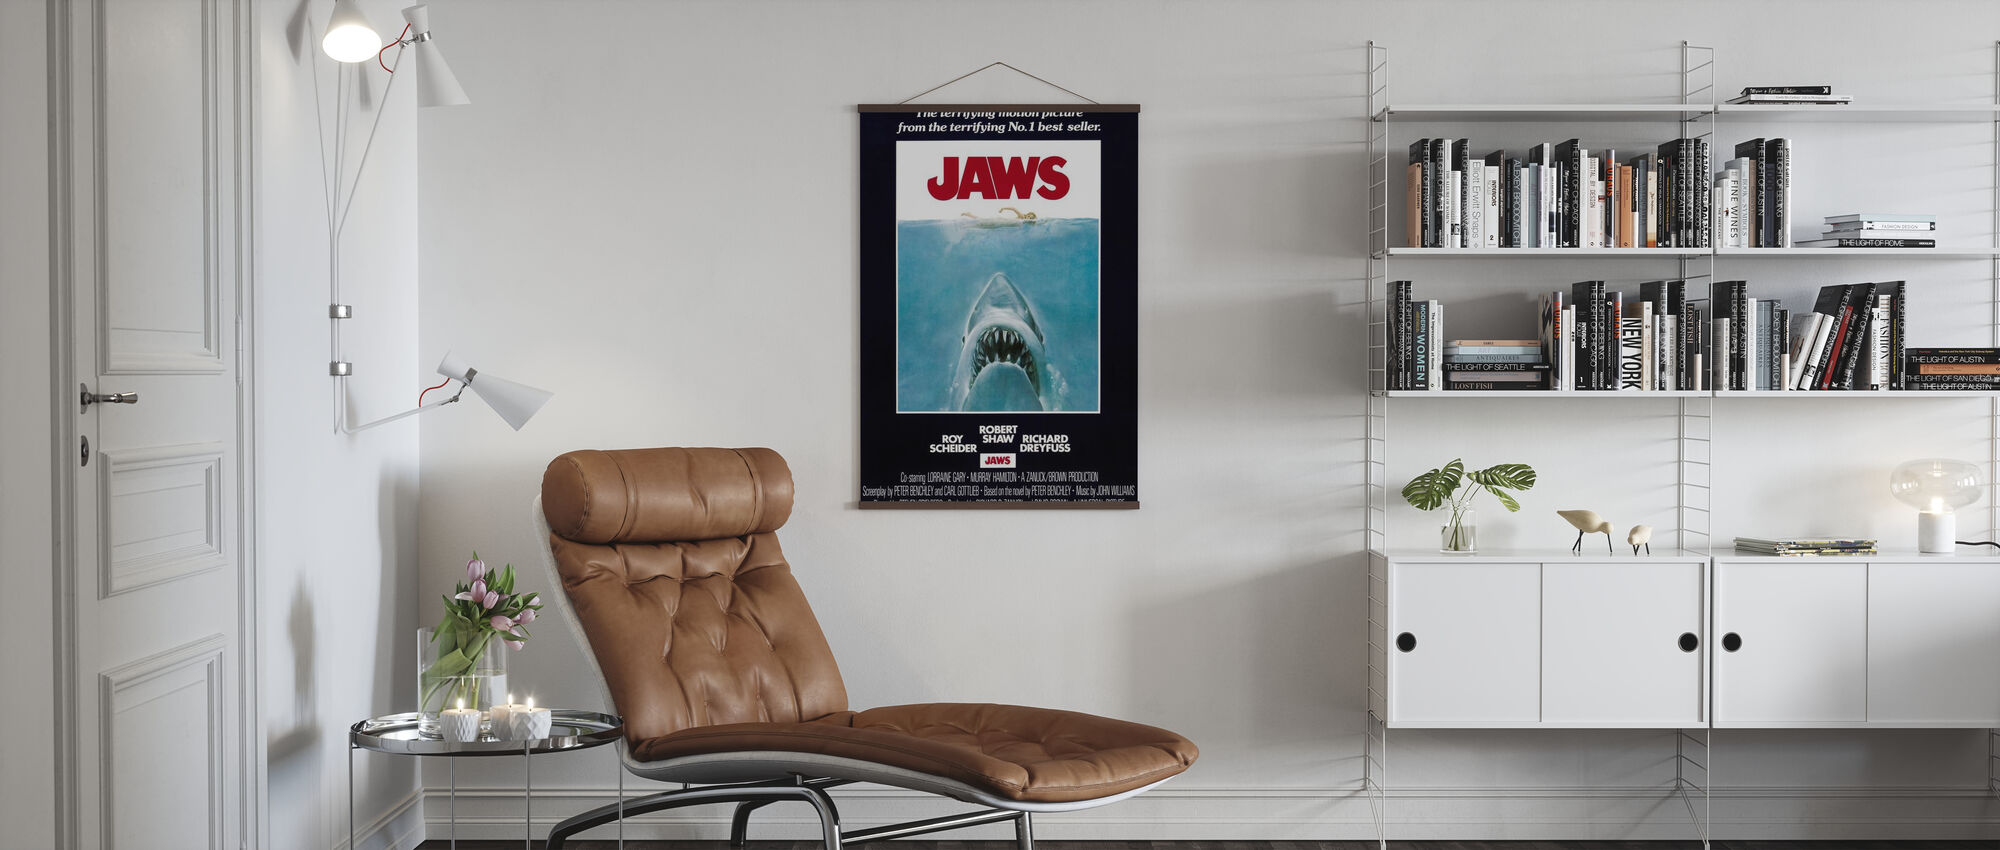 Jaws - Poster - Living Room